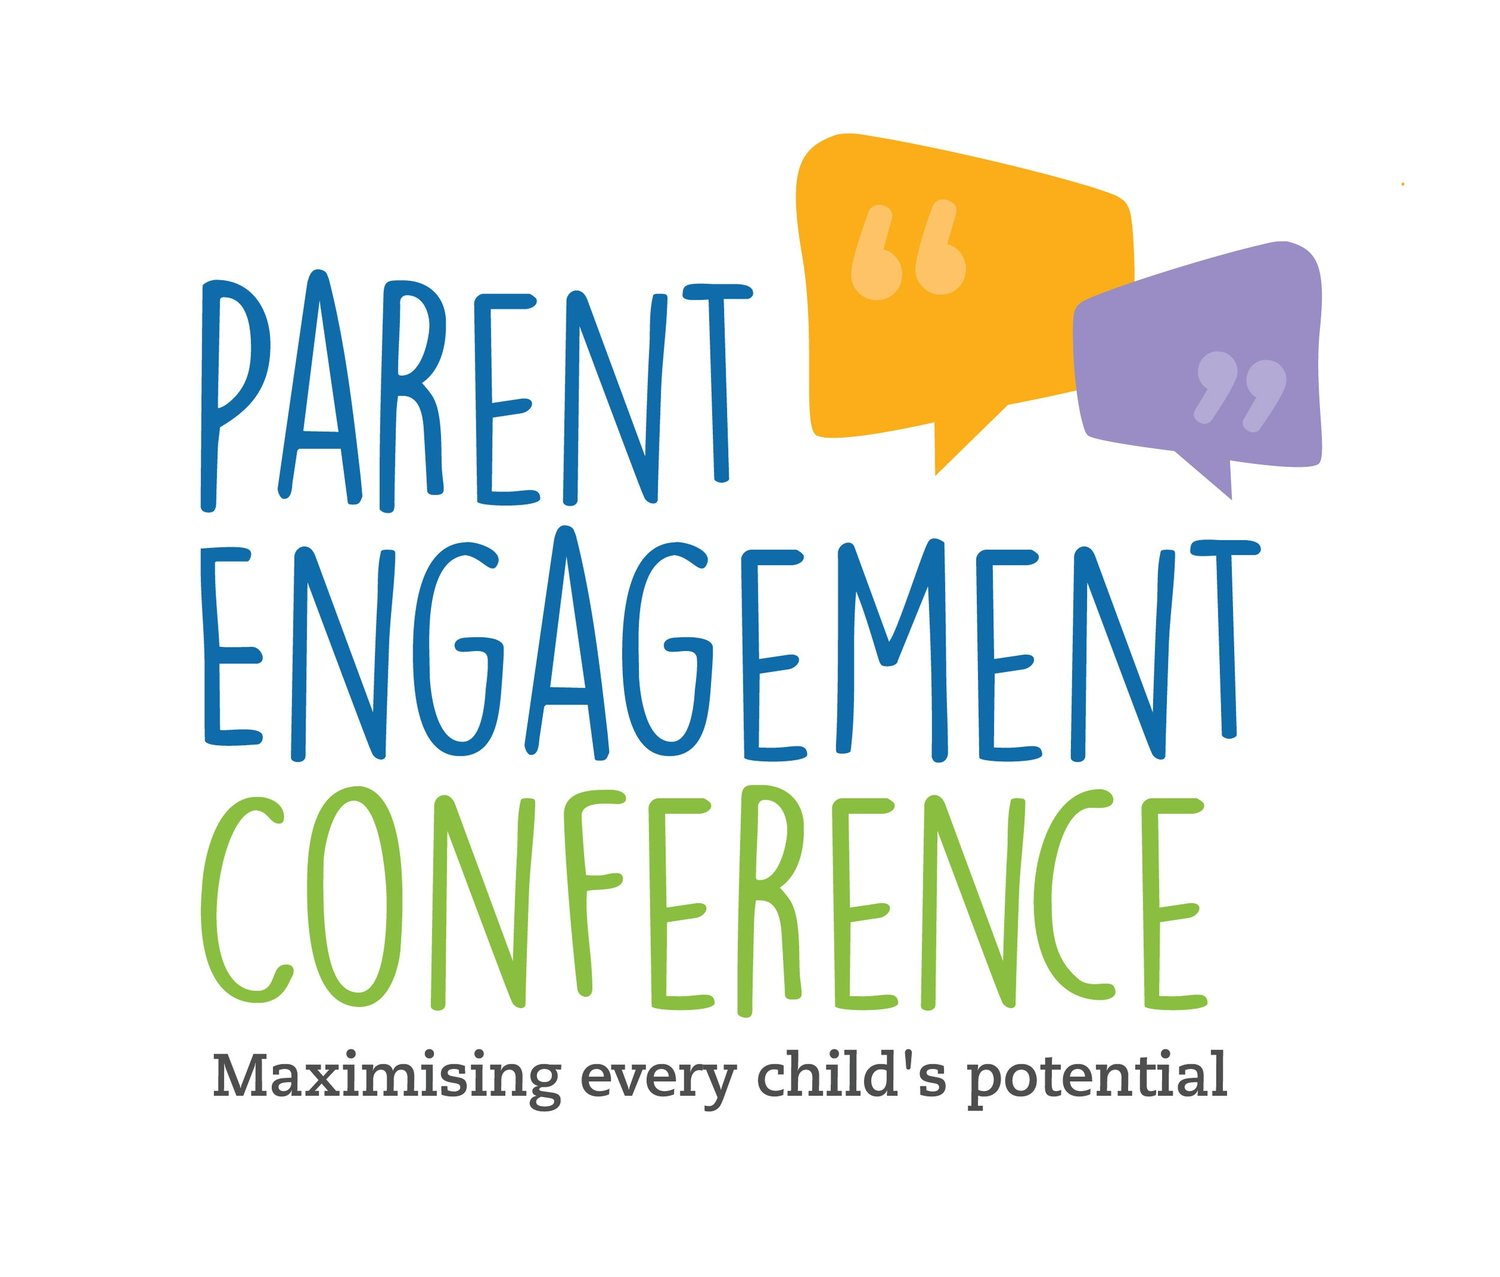 Parent Engagement Conference Australia